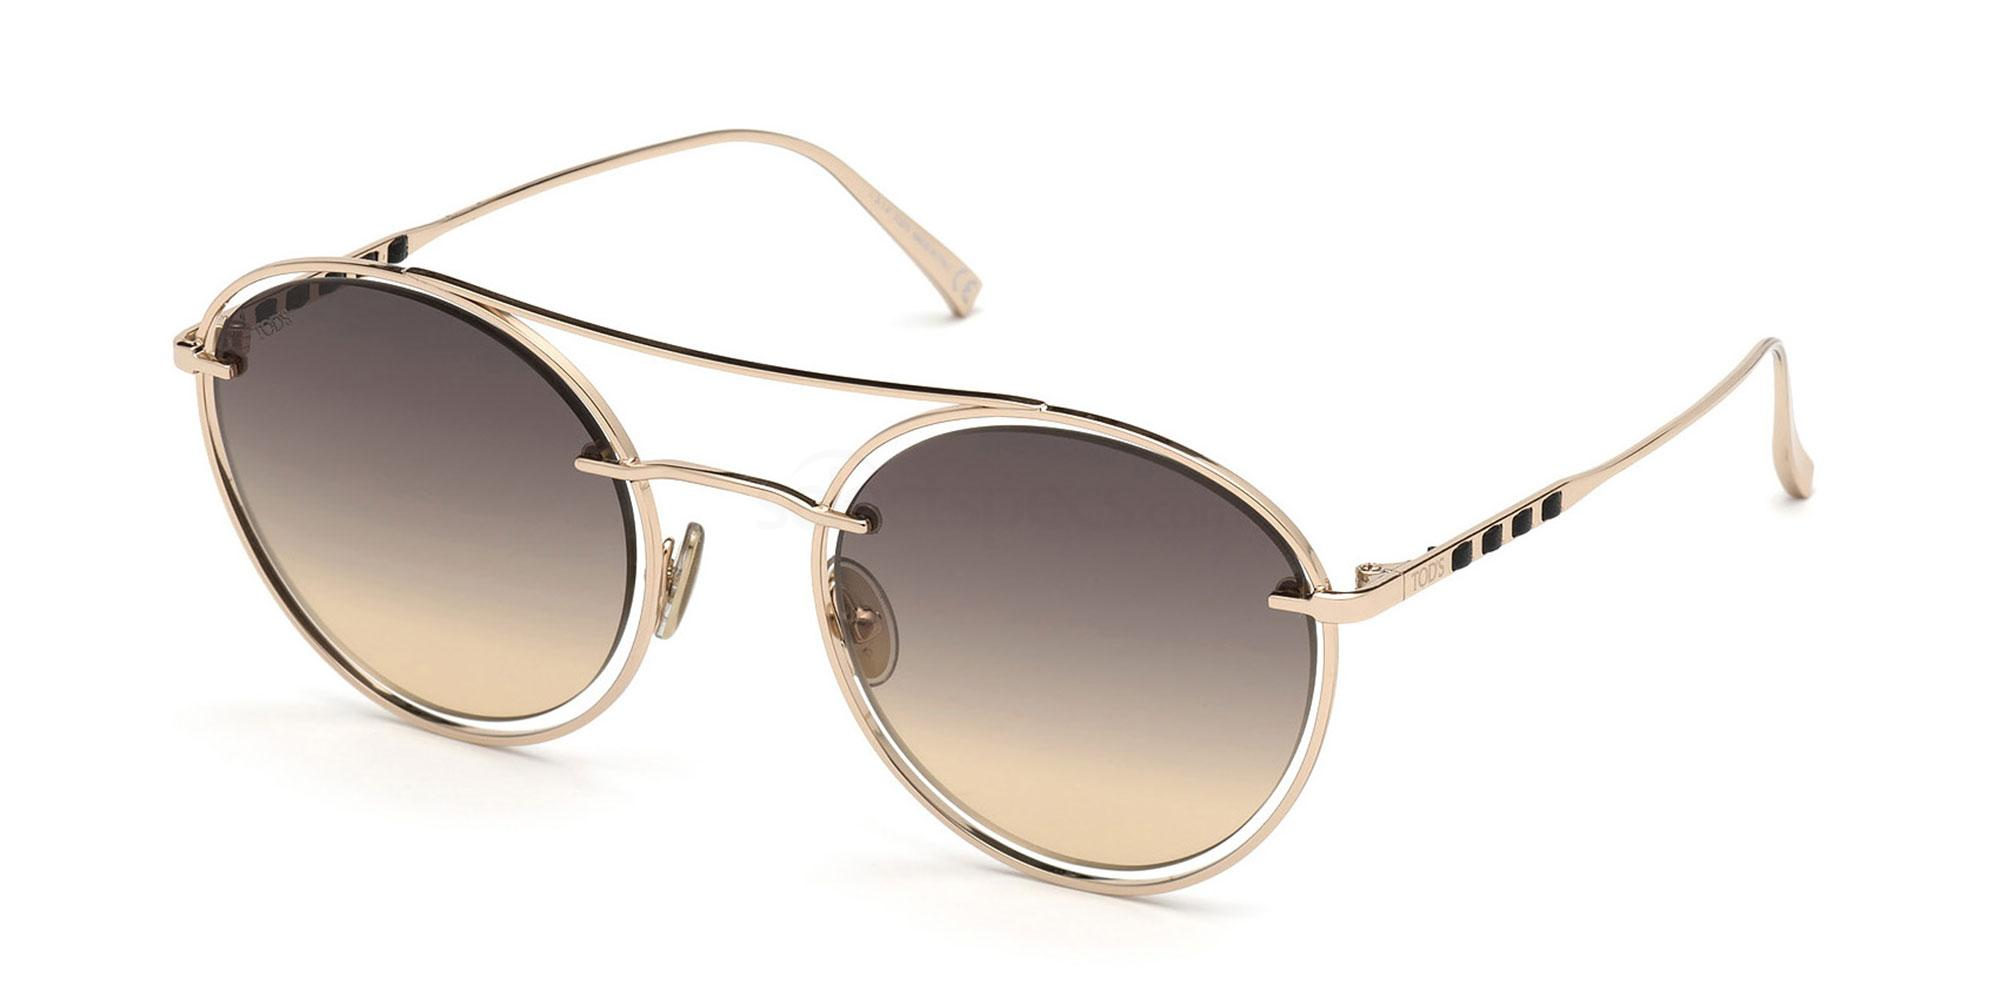 28B TO0265 Sunglasses, TODS